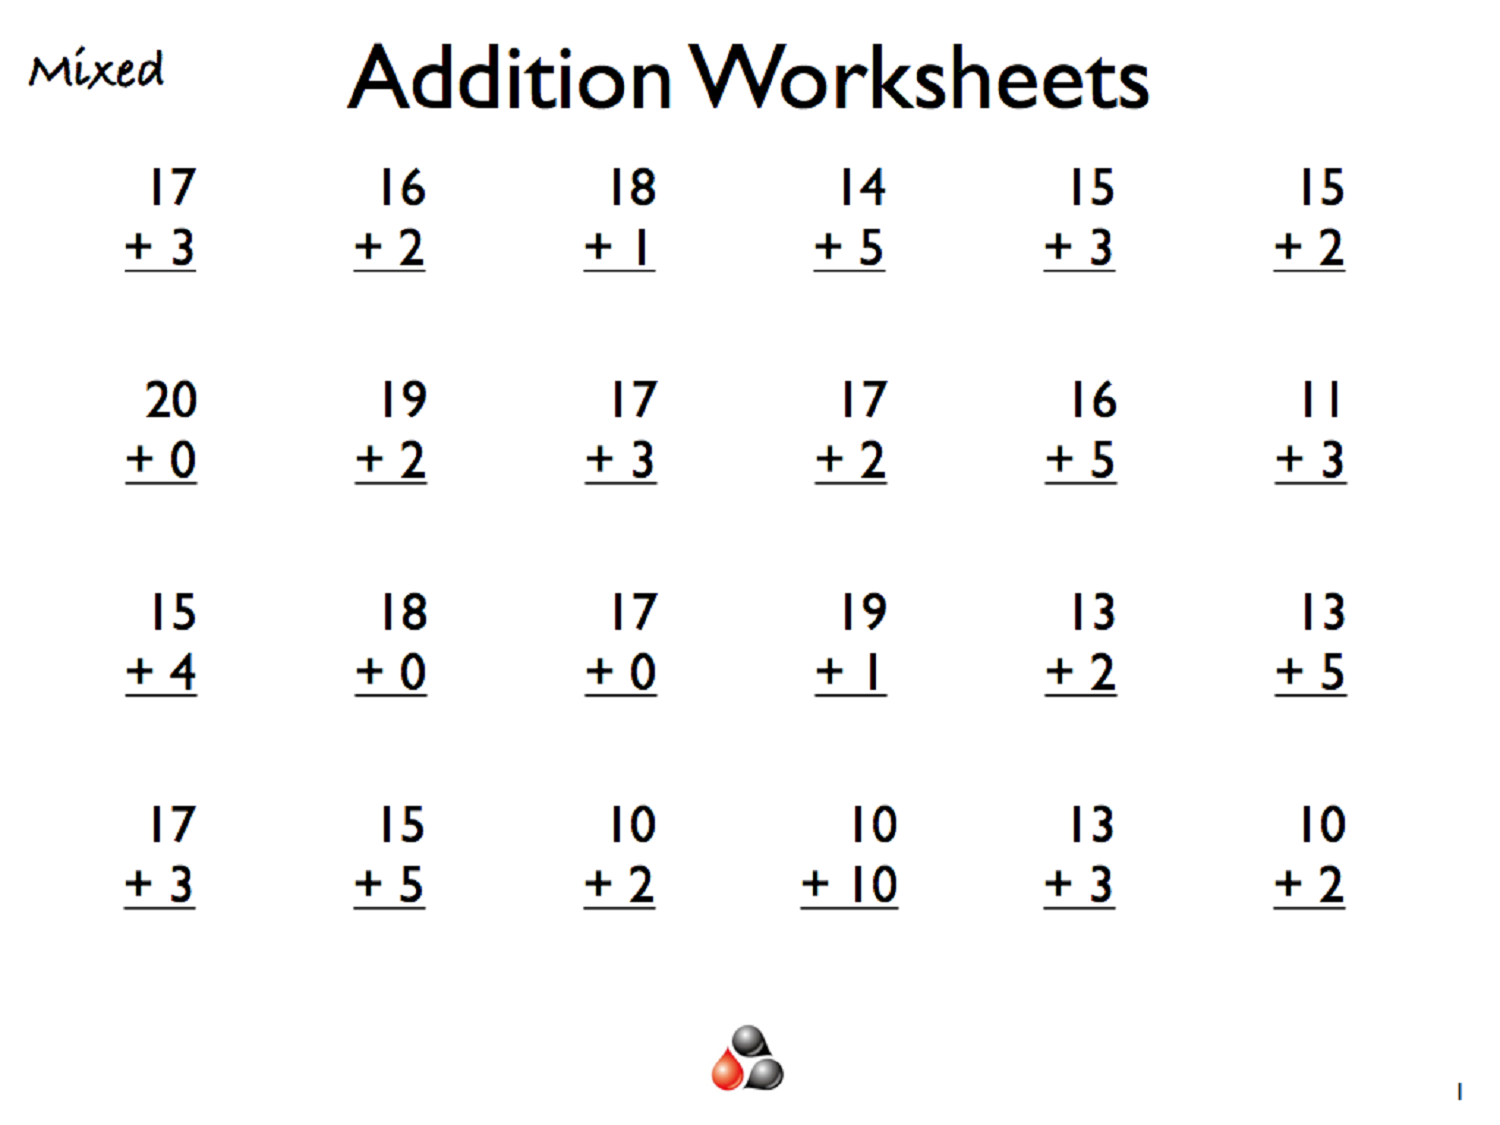 Addition For Worksheets For Grade 1 Is Helpful Educative Media – Year 1 Math Worksheets